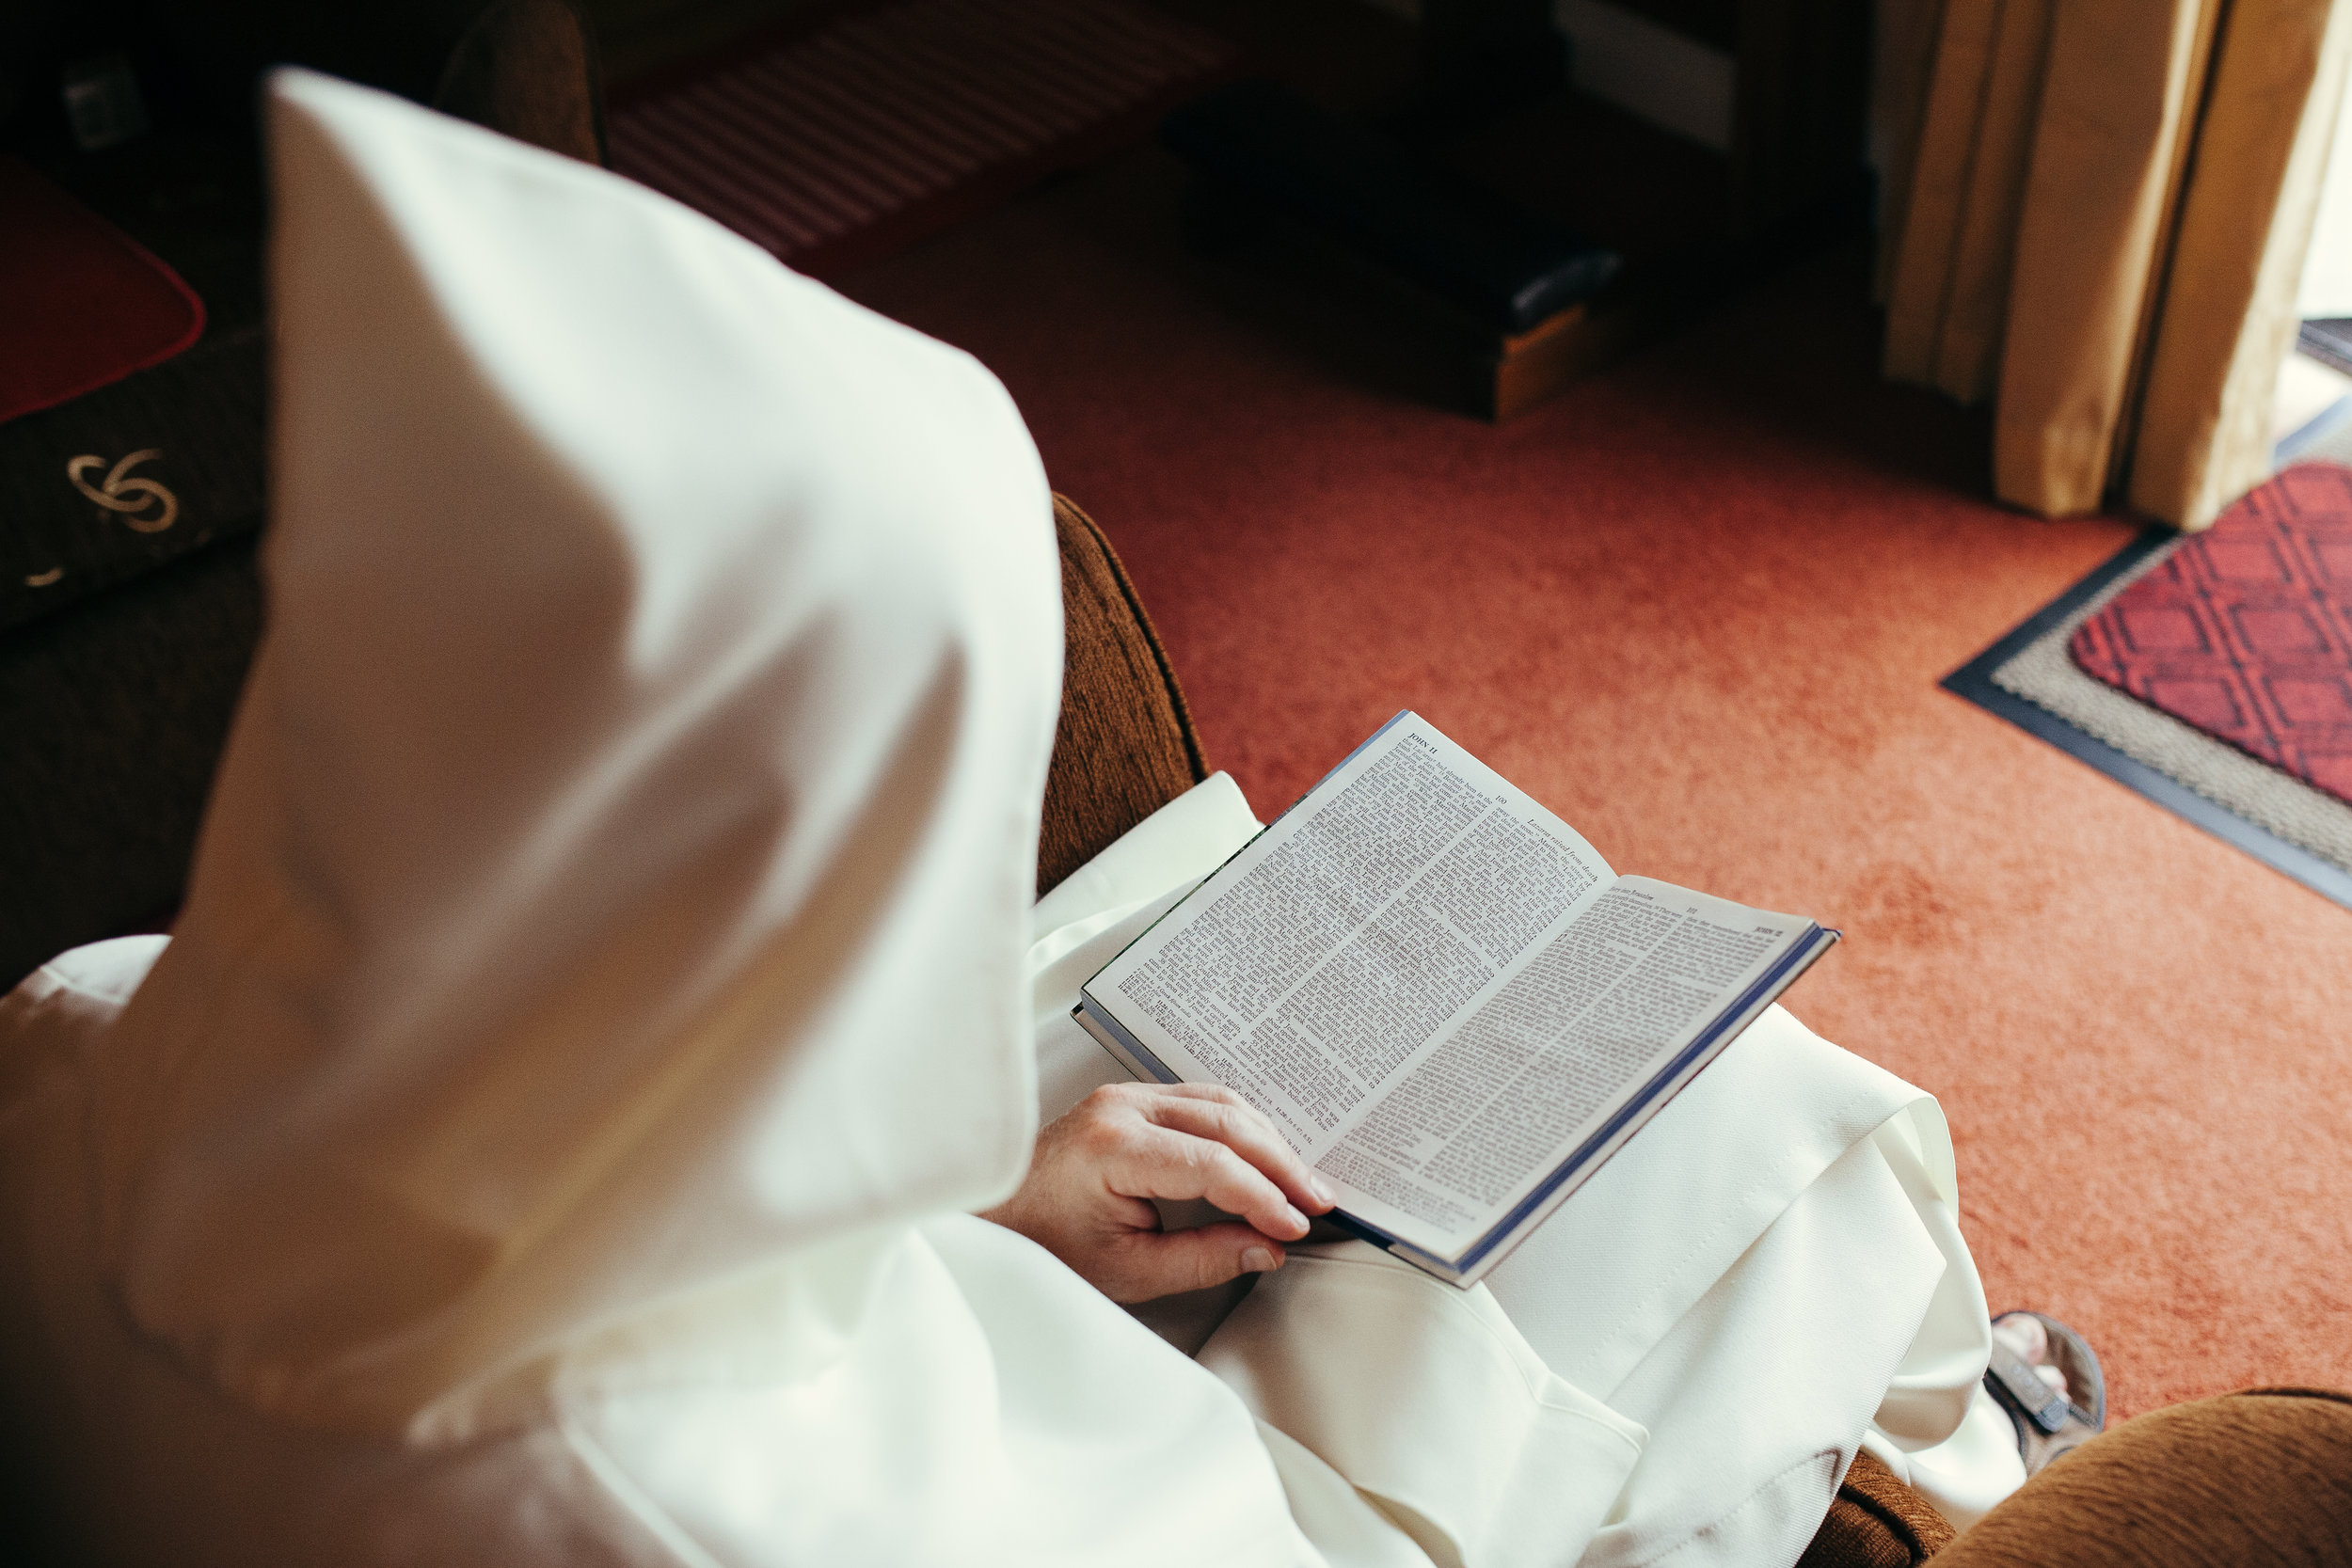 Lazarus Rise - Fr.David reads aloud the story of Lazarus raised from the dead found in the Gospel of John chapter 11.